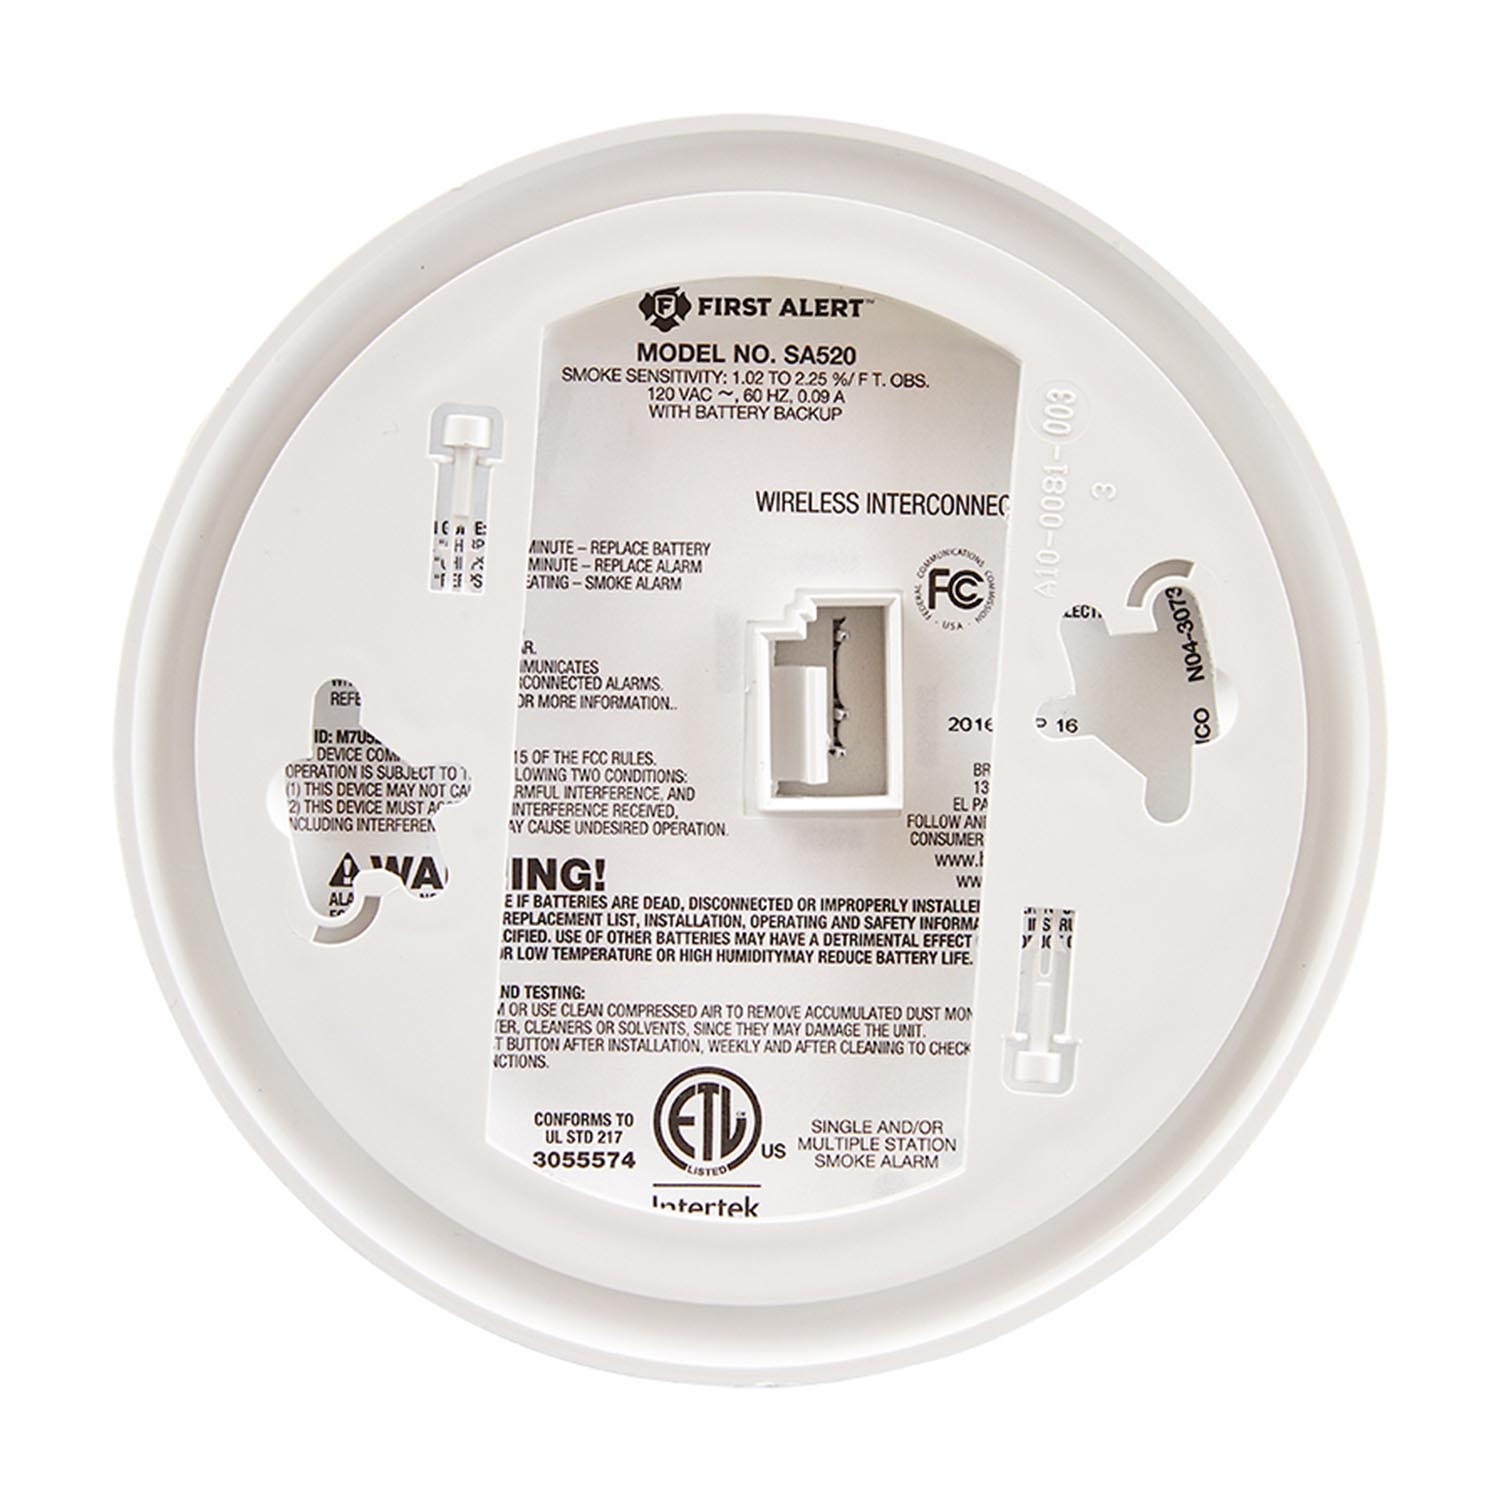 First Alert Sa521cn 3st Wireless Interconnect Hardwired Smoke Alarm Fire System Wiring Diagram 3 1039830